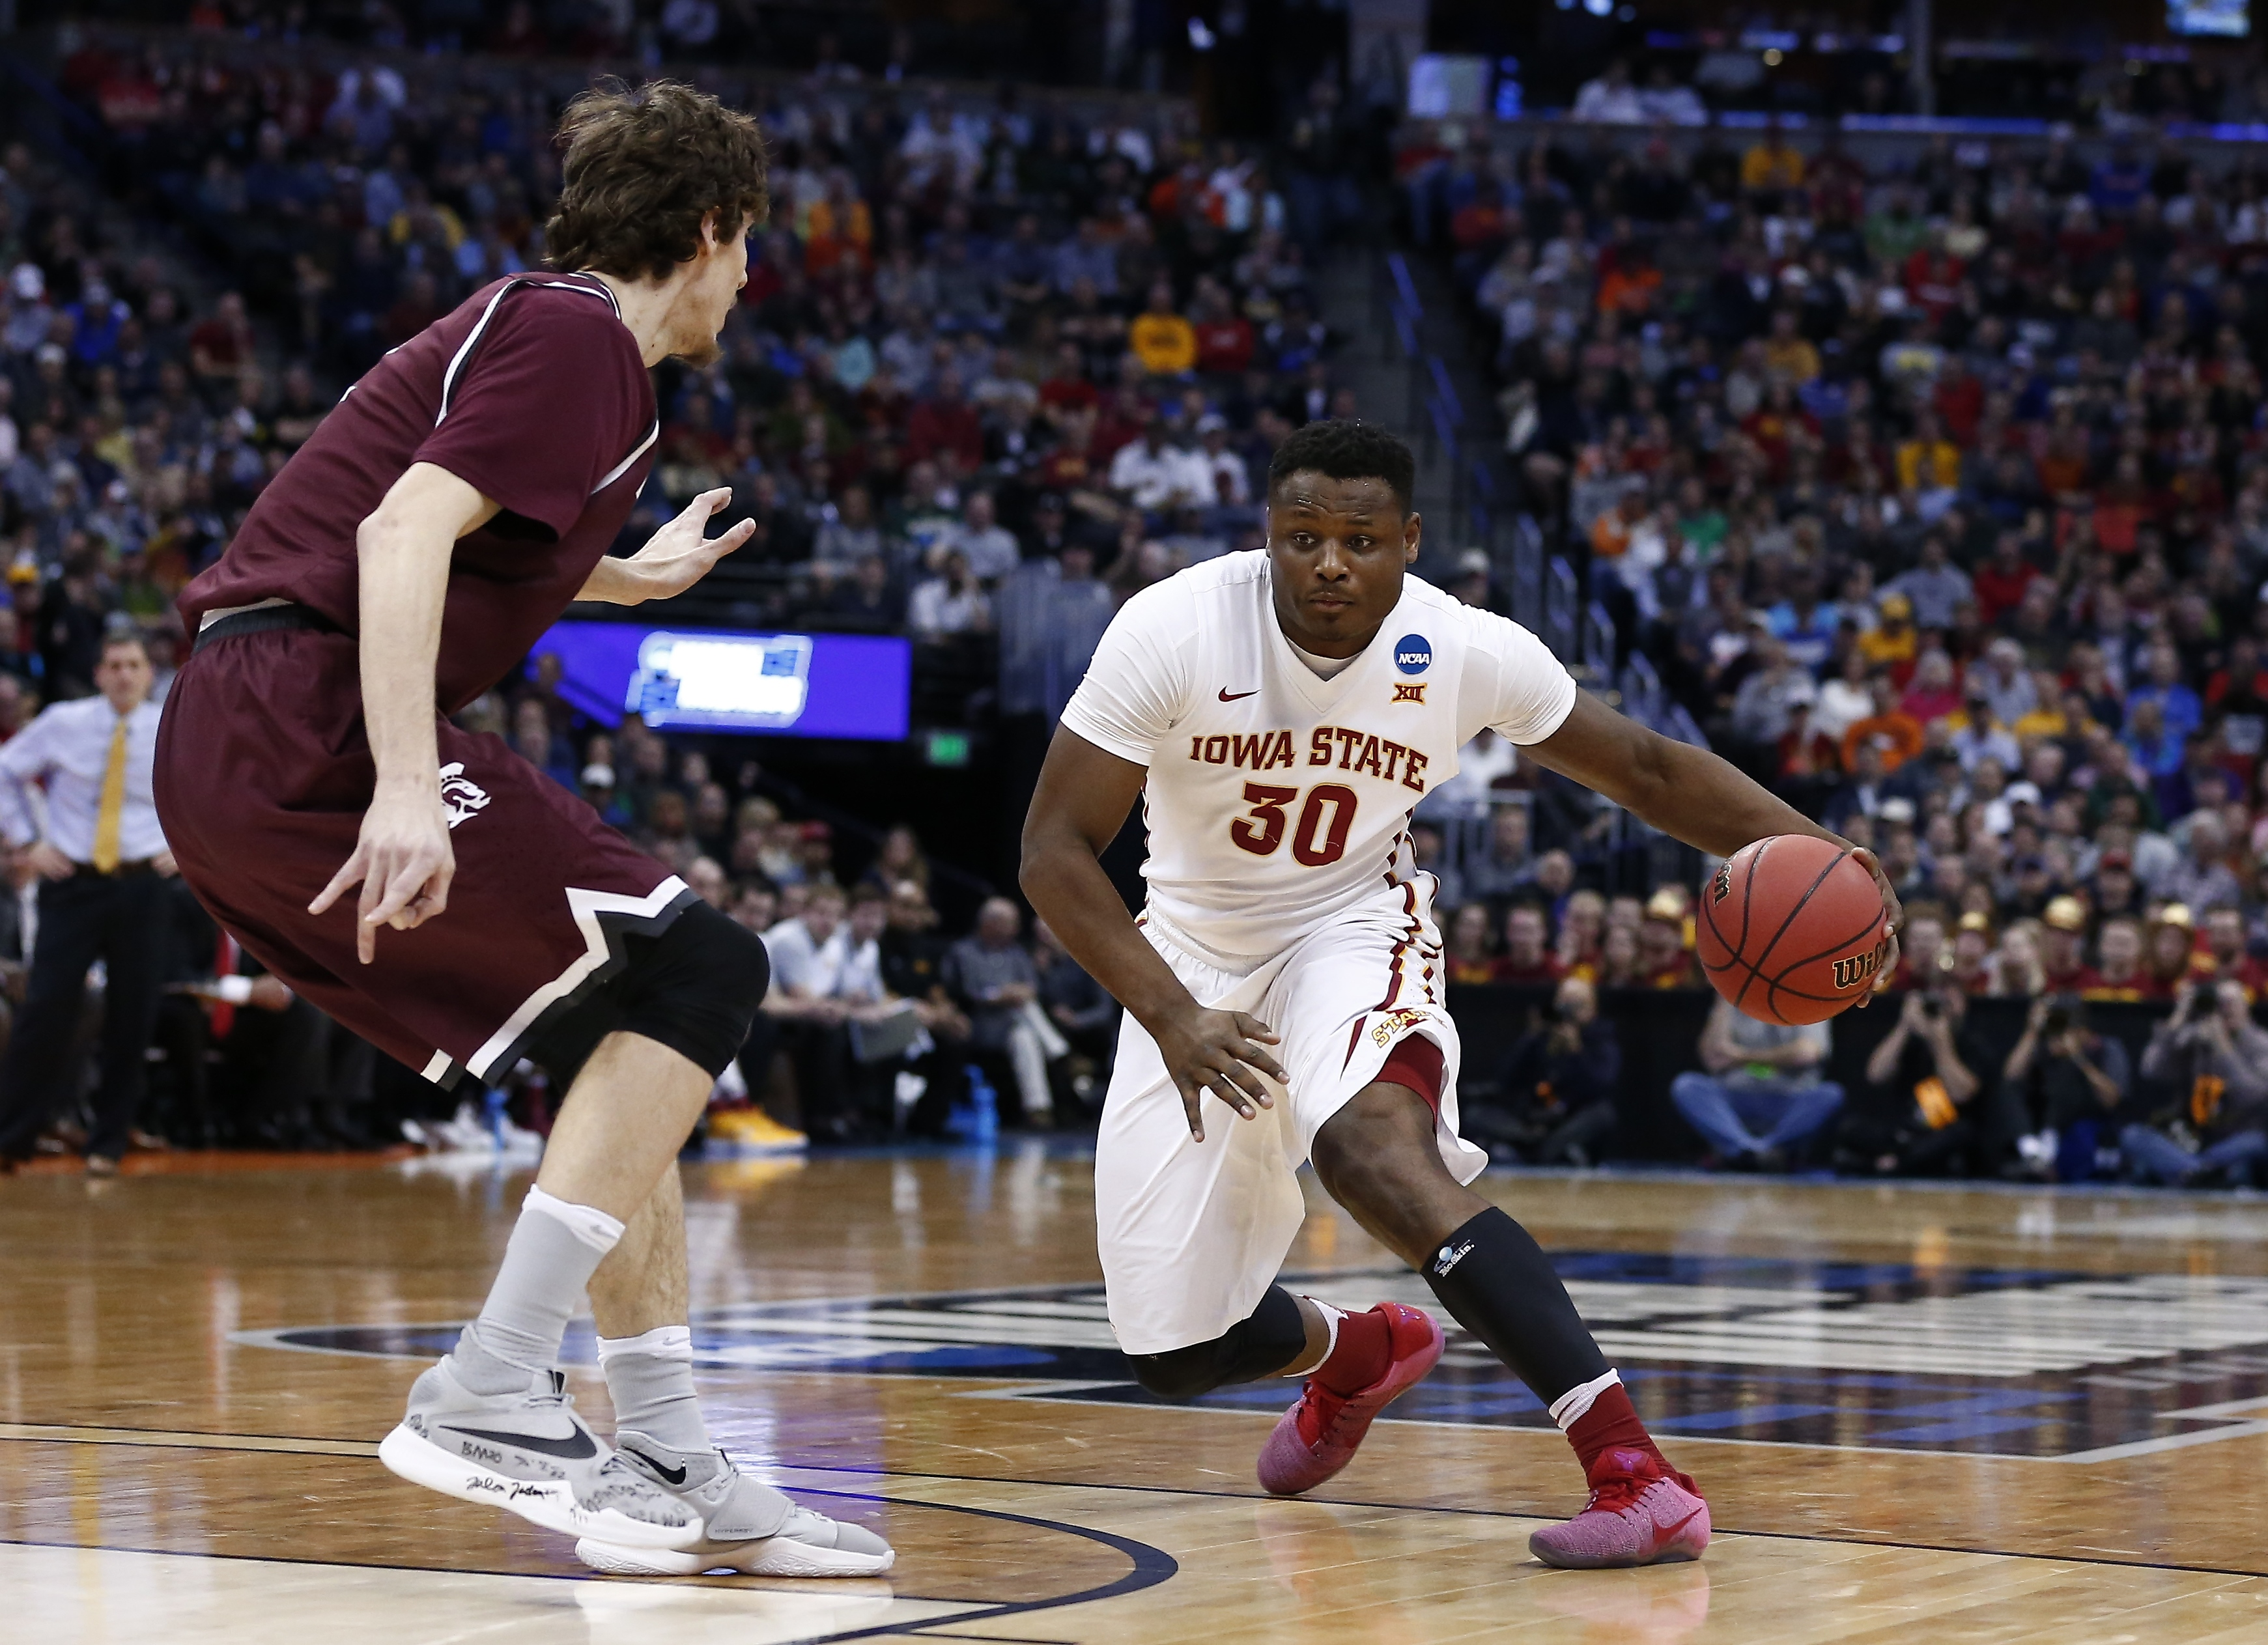 Mar 19, 2016; Denver , CO, USA; Arkansas Little Rock Trojans forward Lis Shoshi (12) defends as Iowa State Cyclones guard Deonte Burton (30) drives in first half action of Iowa State vs Arkansas Little Rock during the second round of the 2016 NCAA Tournament at Pepsi Center. Mandatory Credit: Isaiah J. Downing-USA TODAY Sports